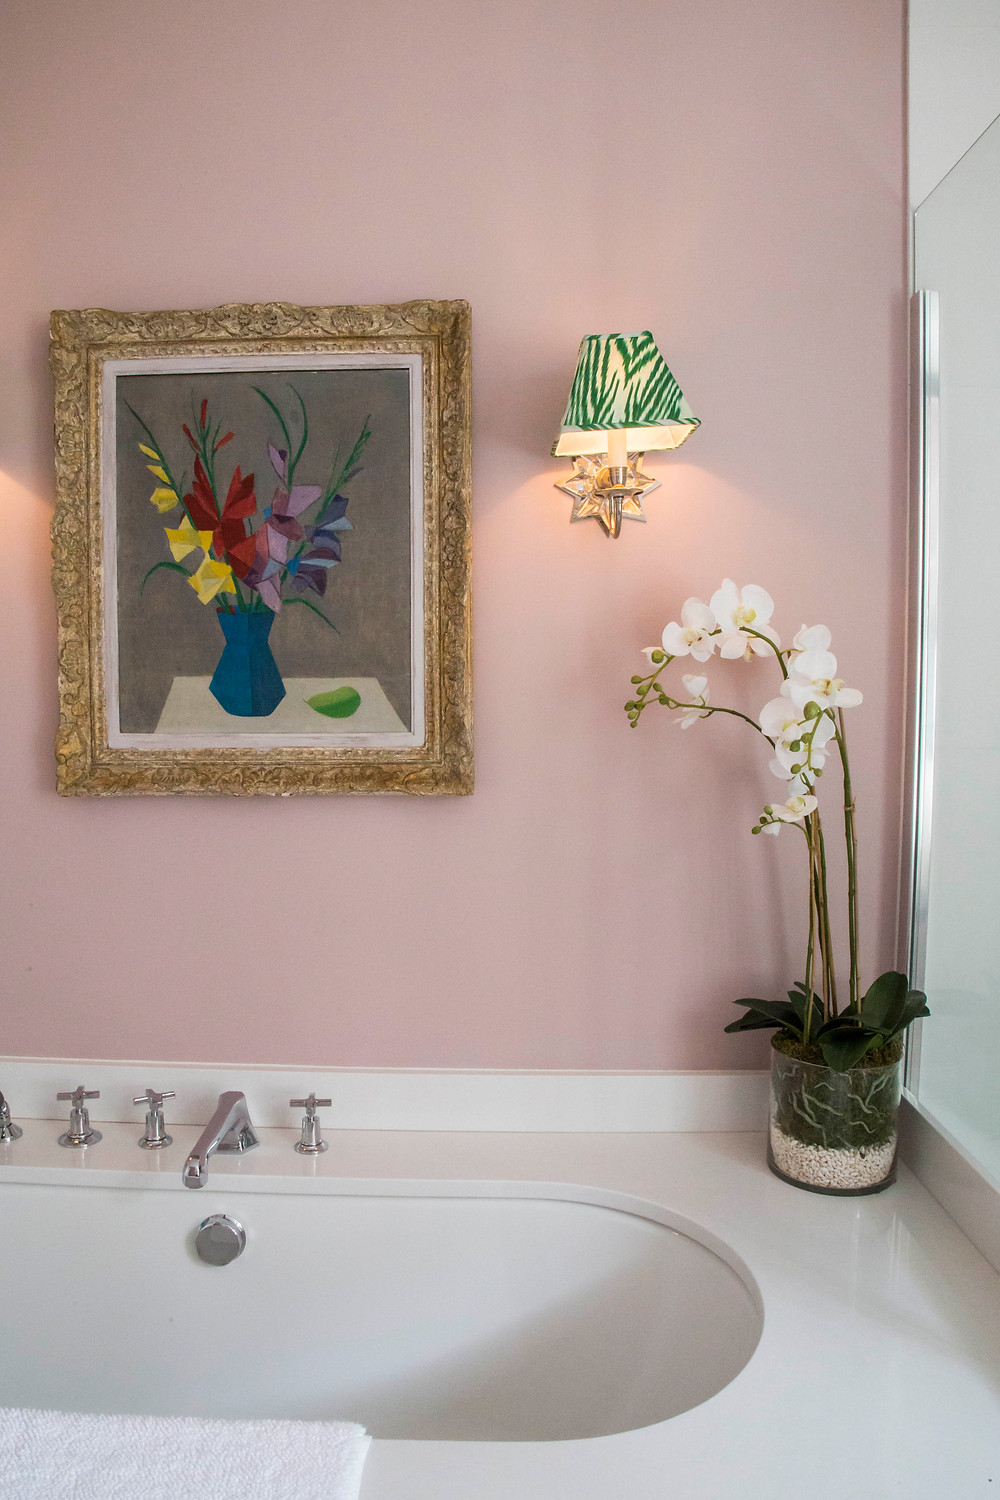 FAMILY BATHROOM in English style with pink walls and large venetian mirror, repurposed chest of drawers Sarah Vanrenen